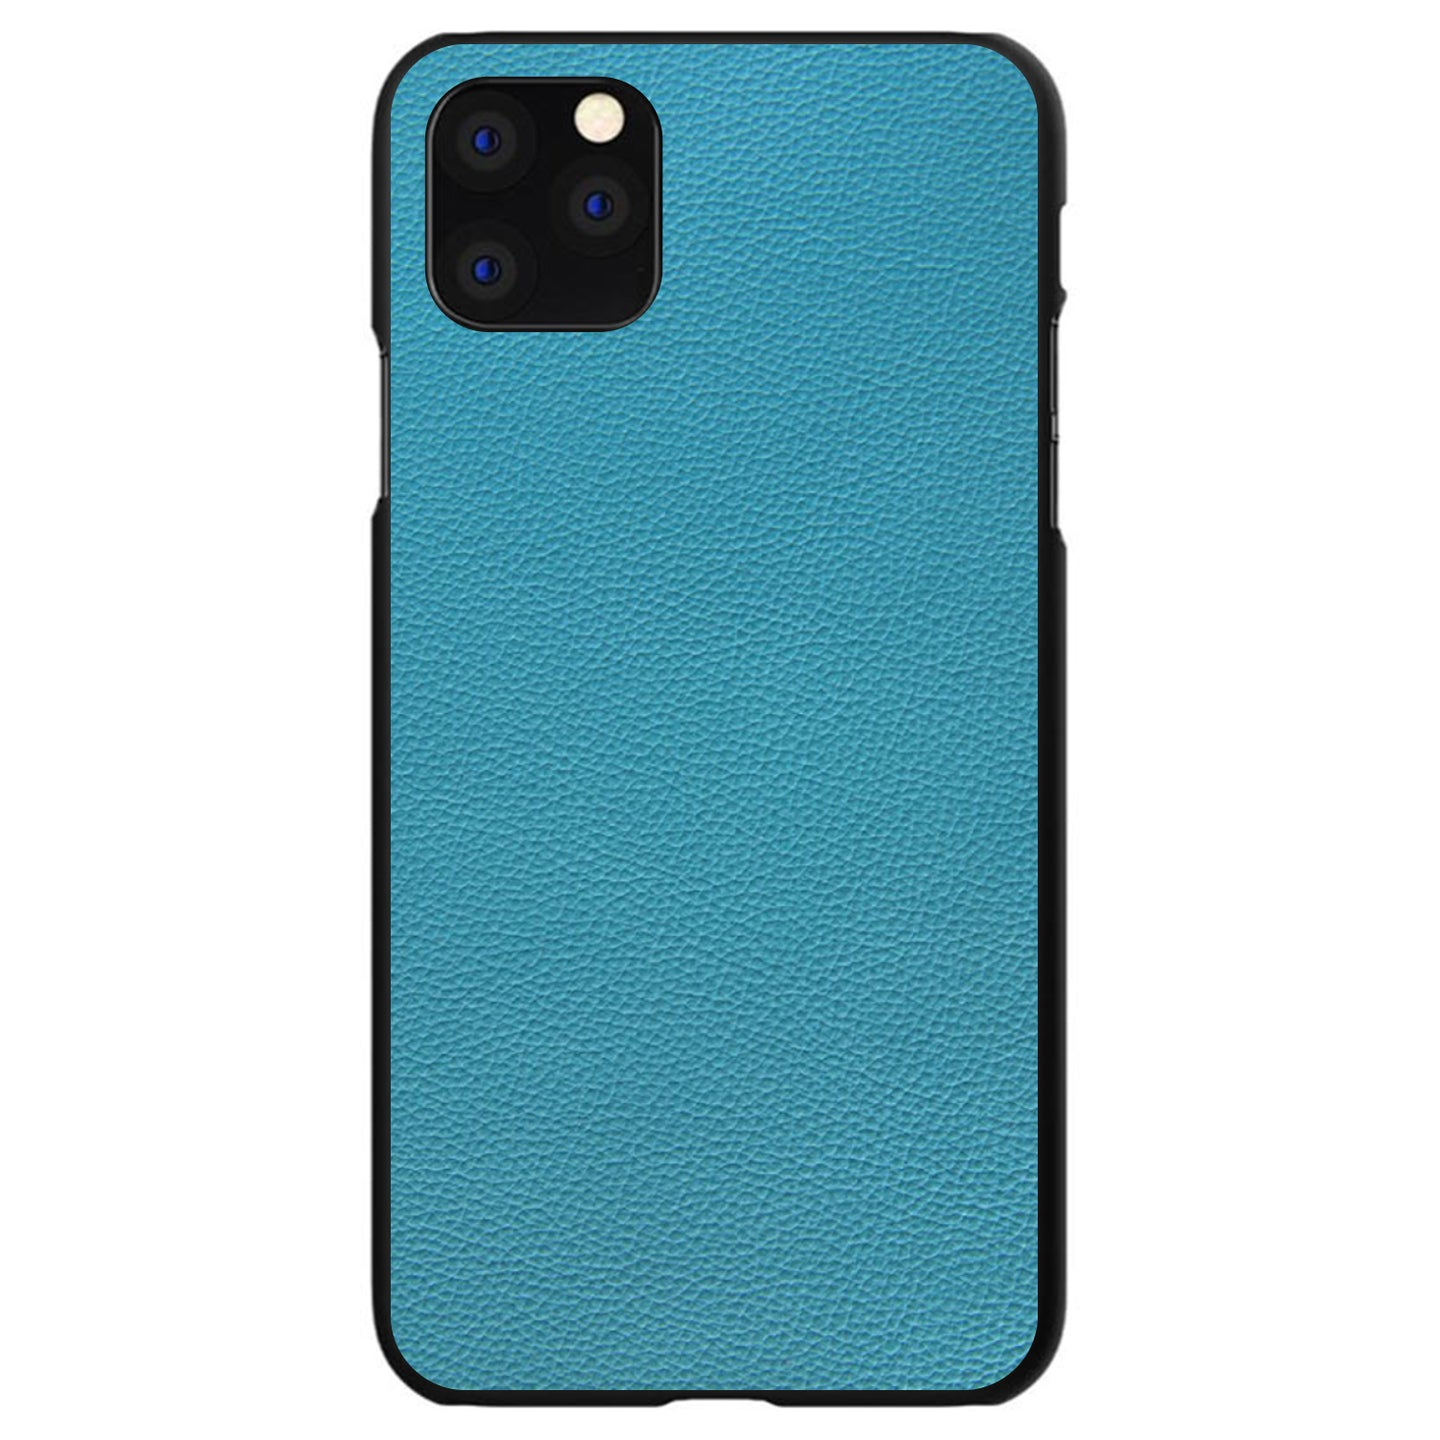 DistinctInk® Hard Plastic Snap-On Case for Apple iPhone - Teal Leather Print Design